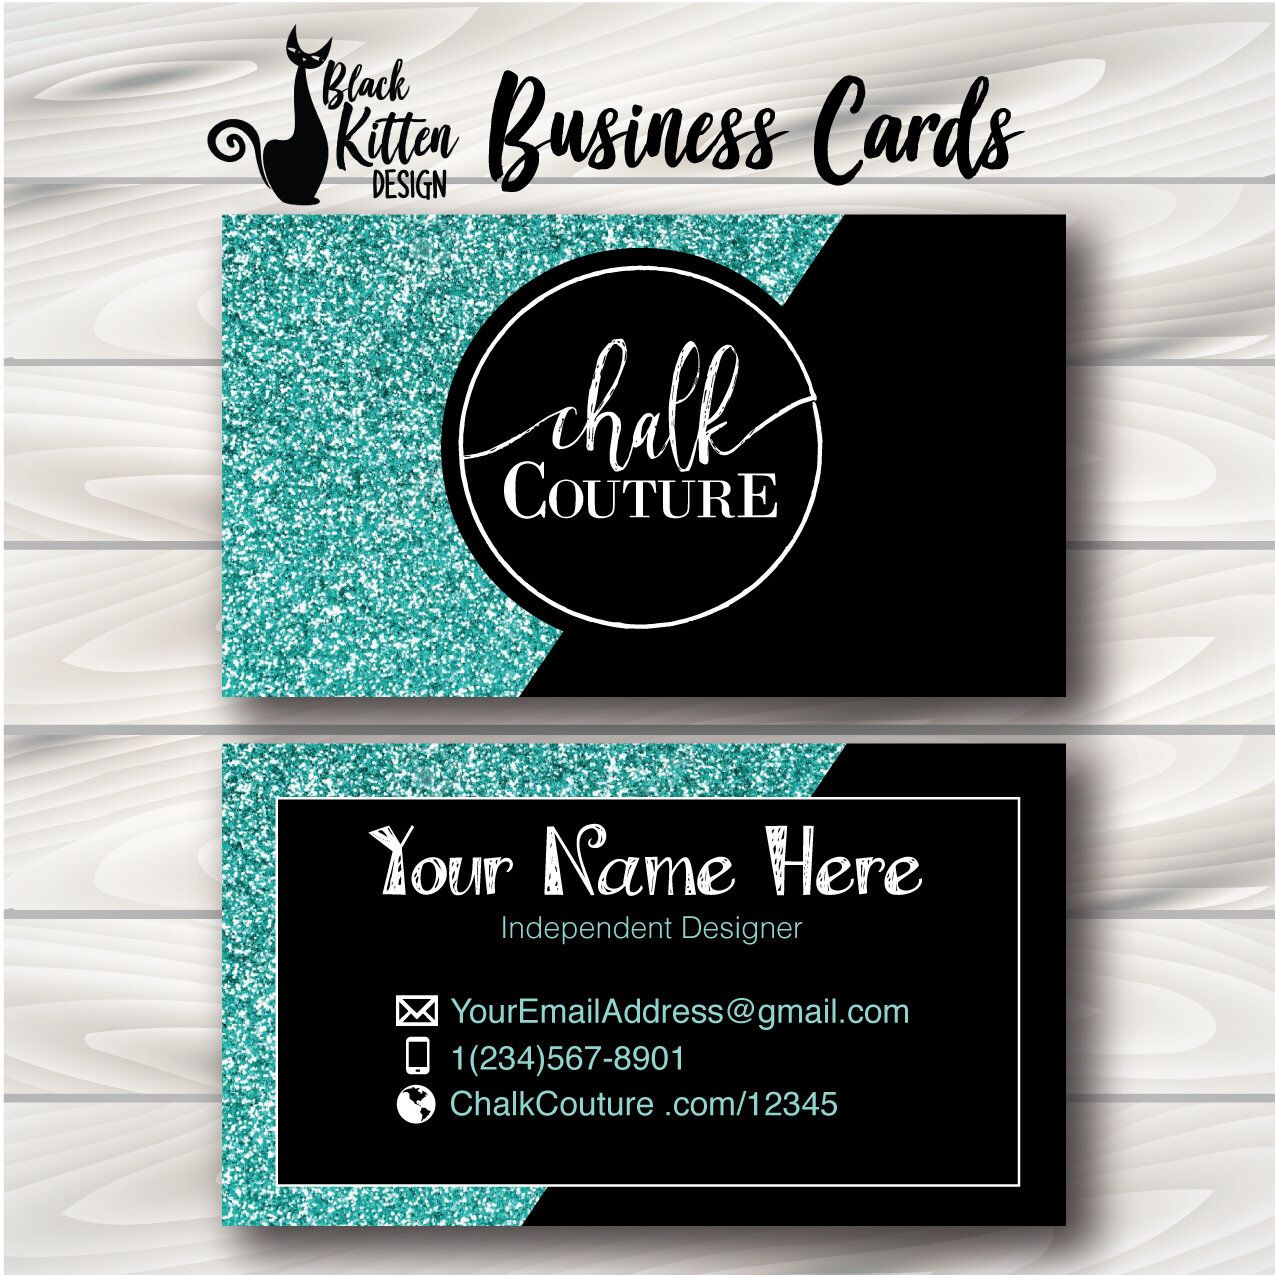 Chalk couture business cards pink glitter chalk couture